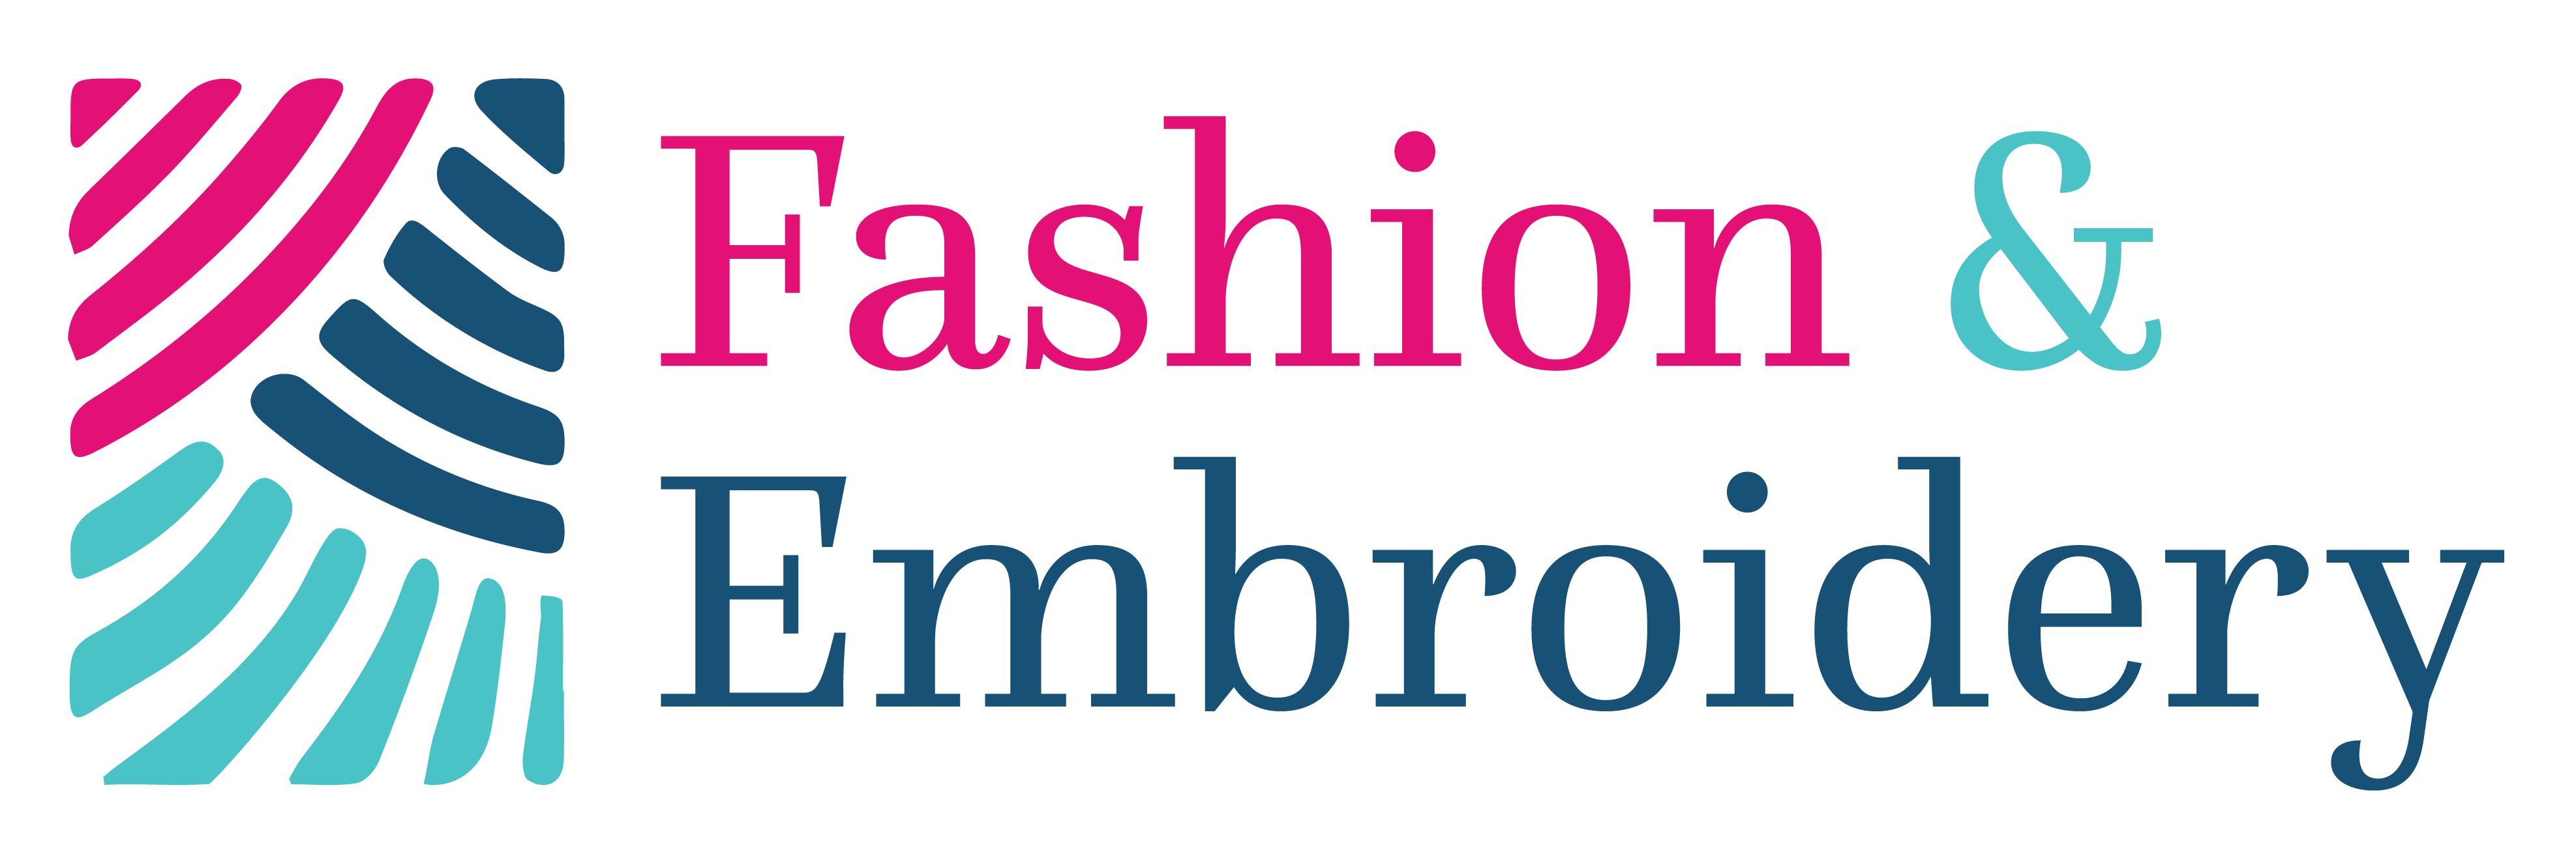 Fashion & Embroidery